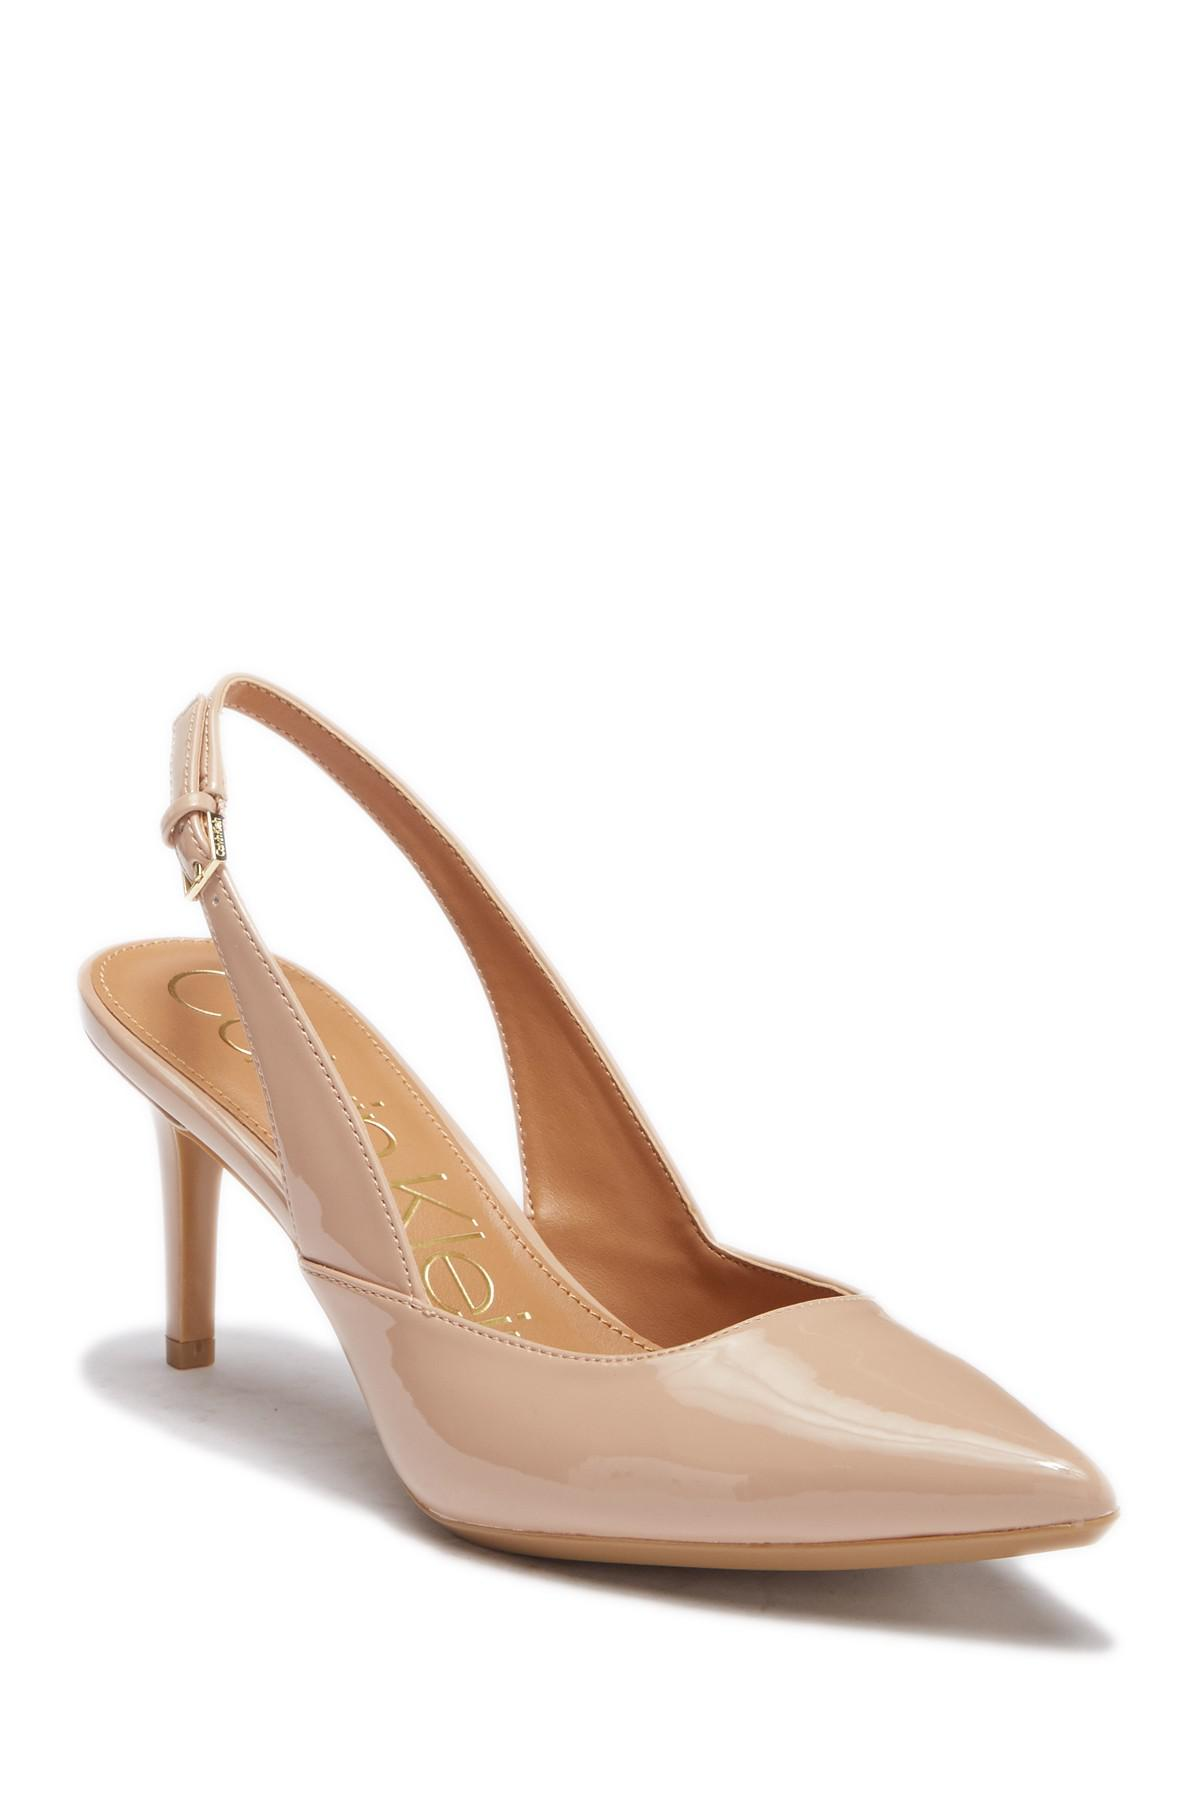 e1dbd37f04a Lyst - Calvin Klein Giona Patent Slingback Pump in Natural - Save 57%